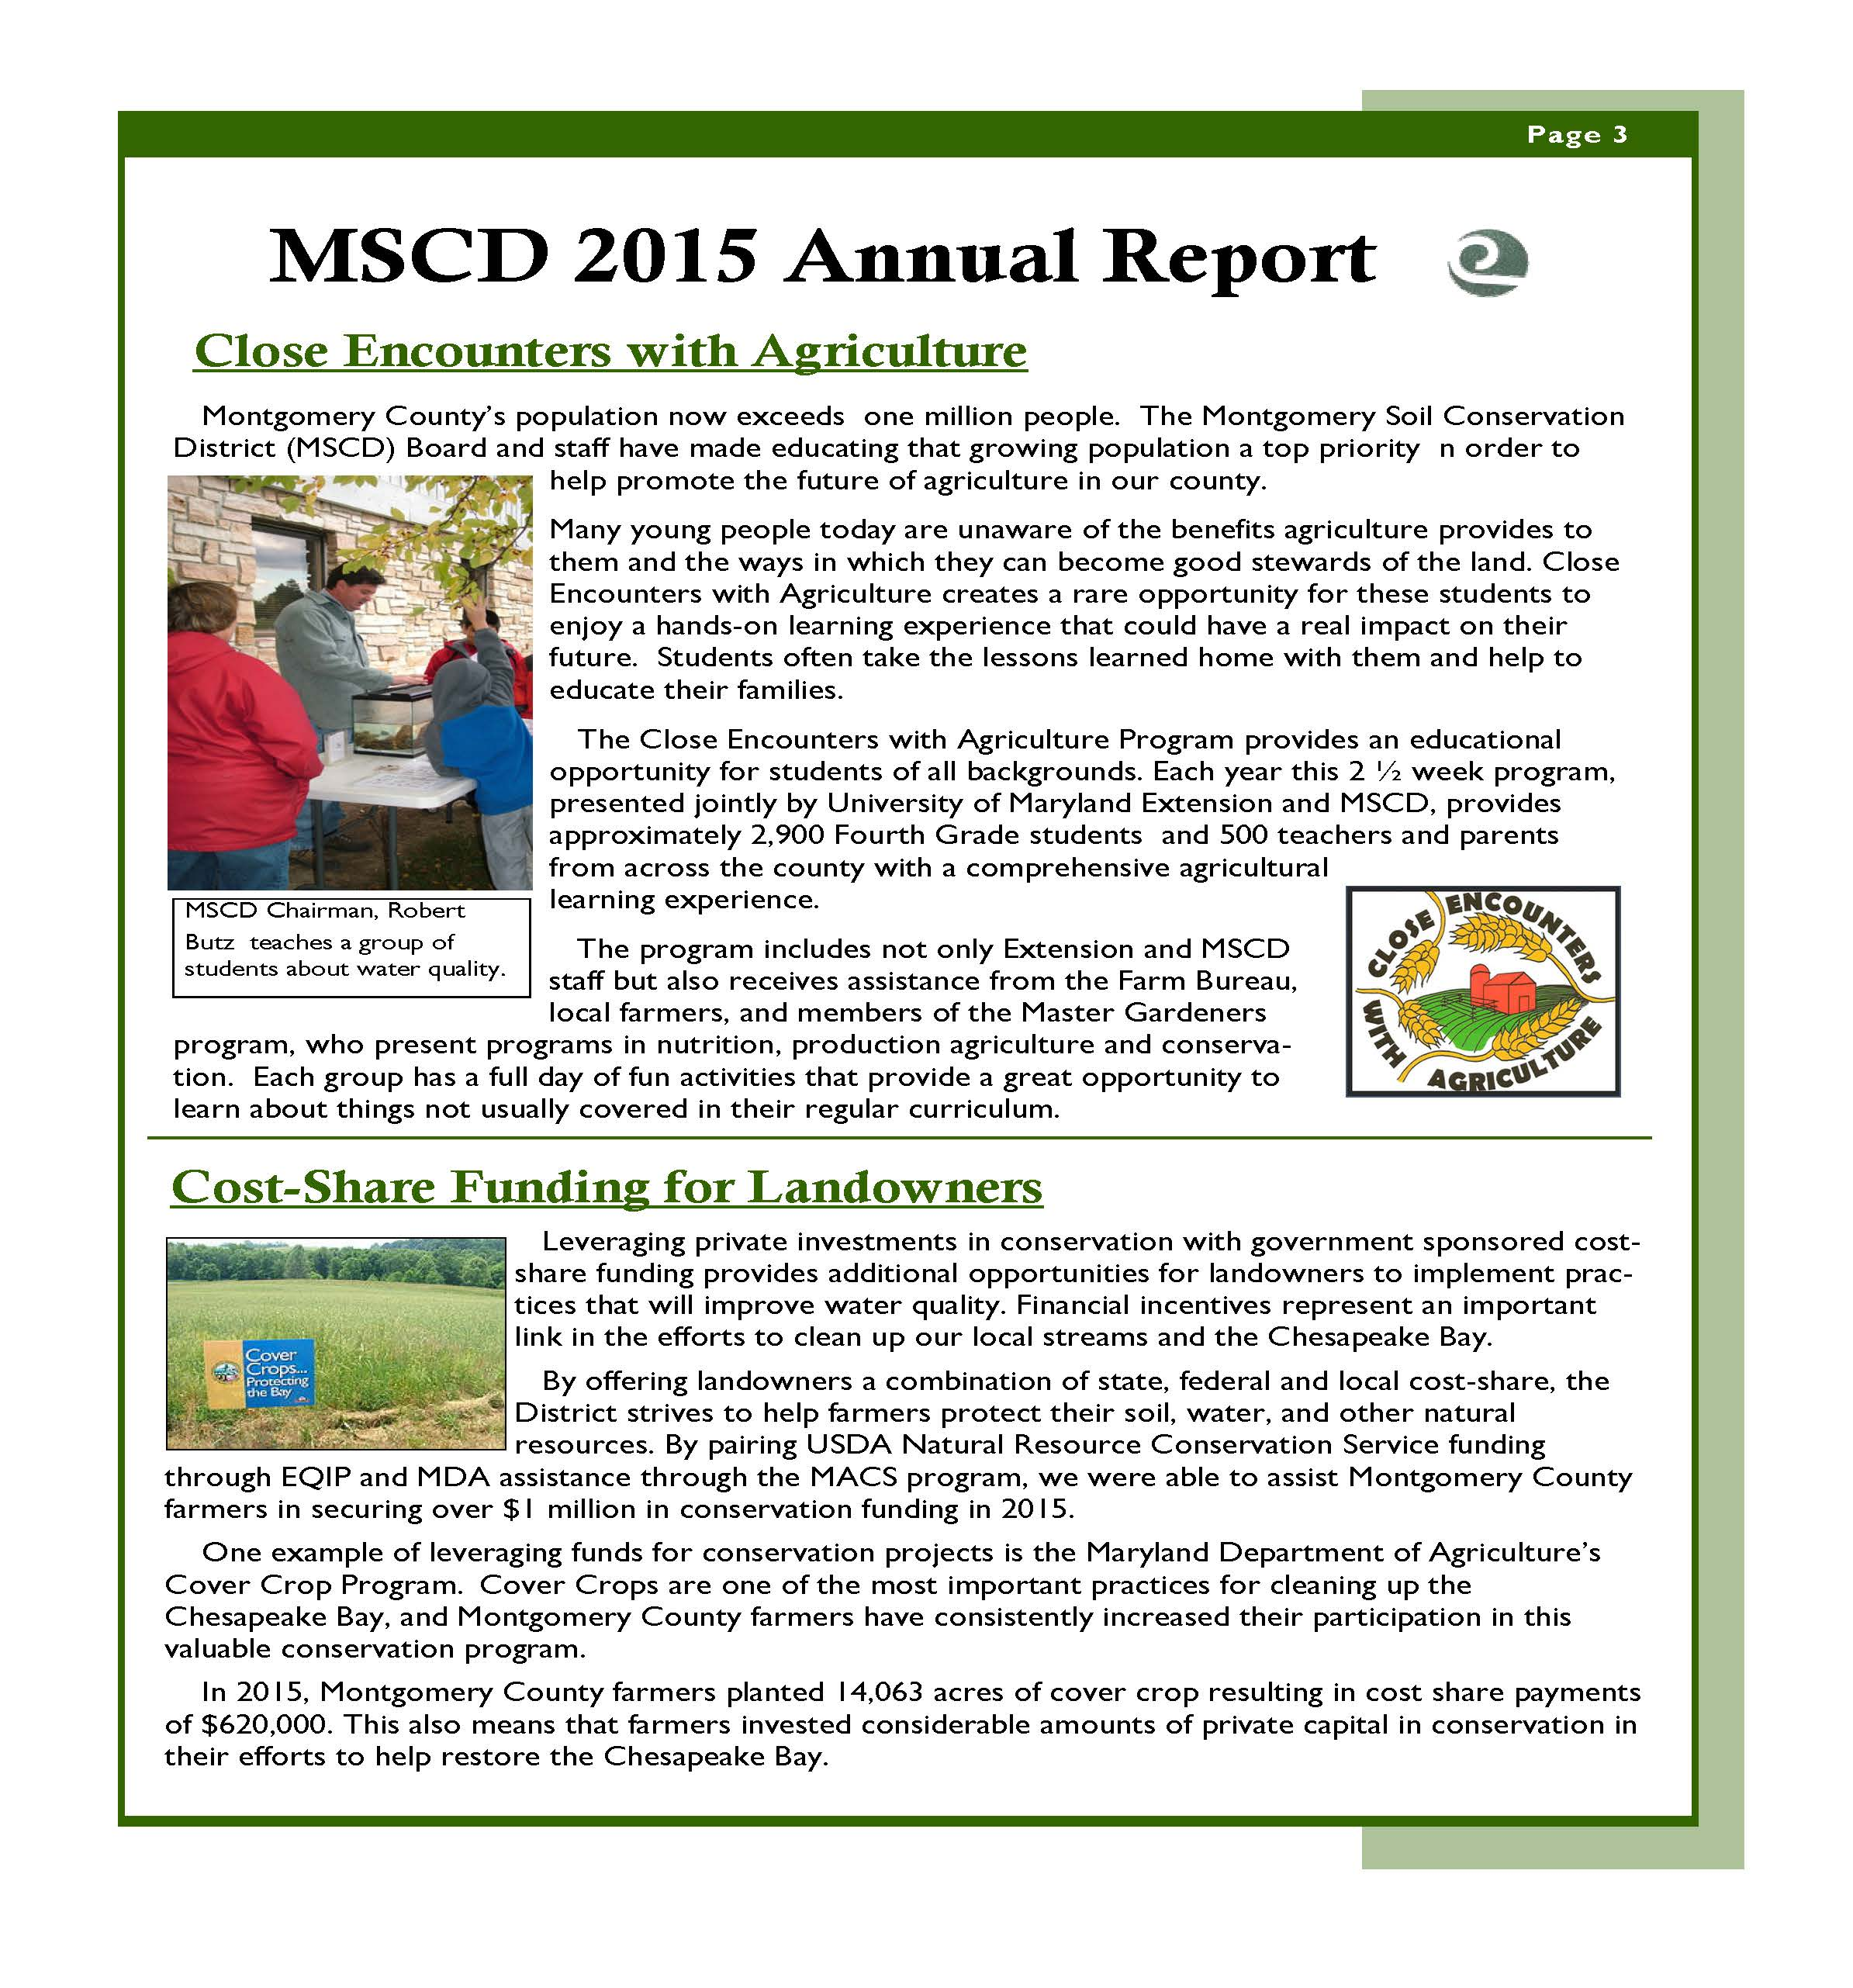 MSCD 2015 Annual Report page 3